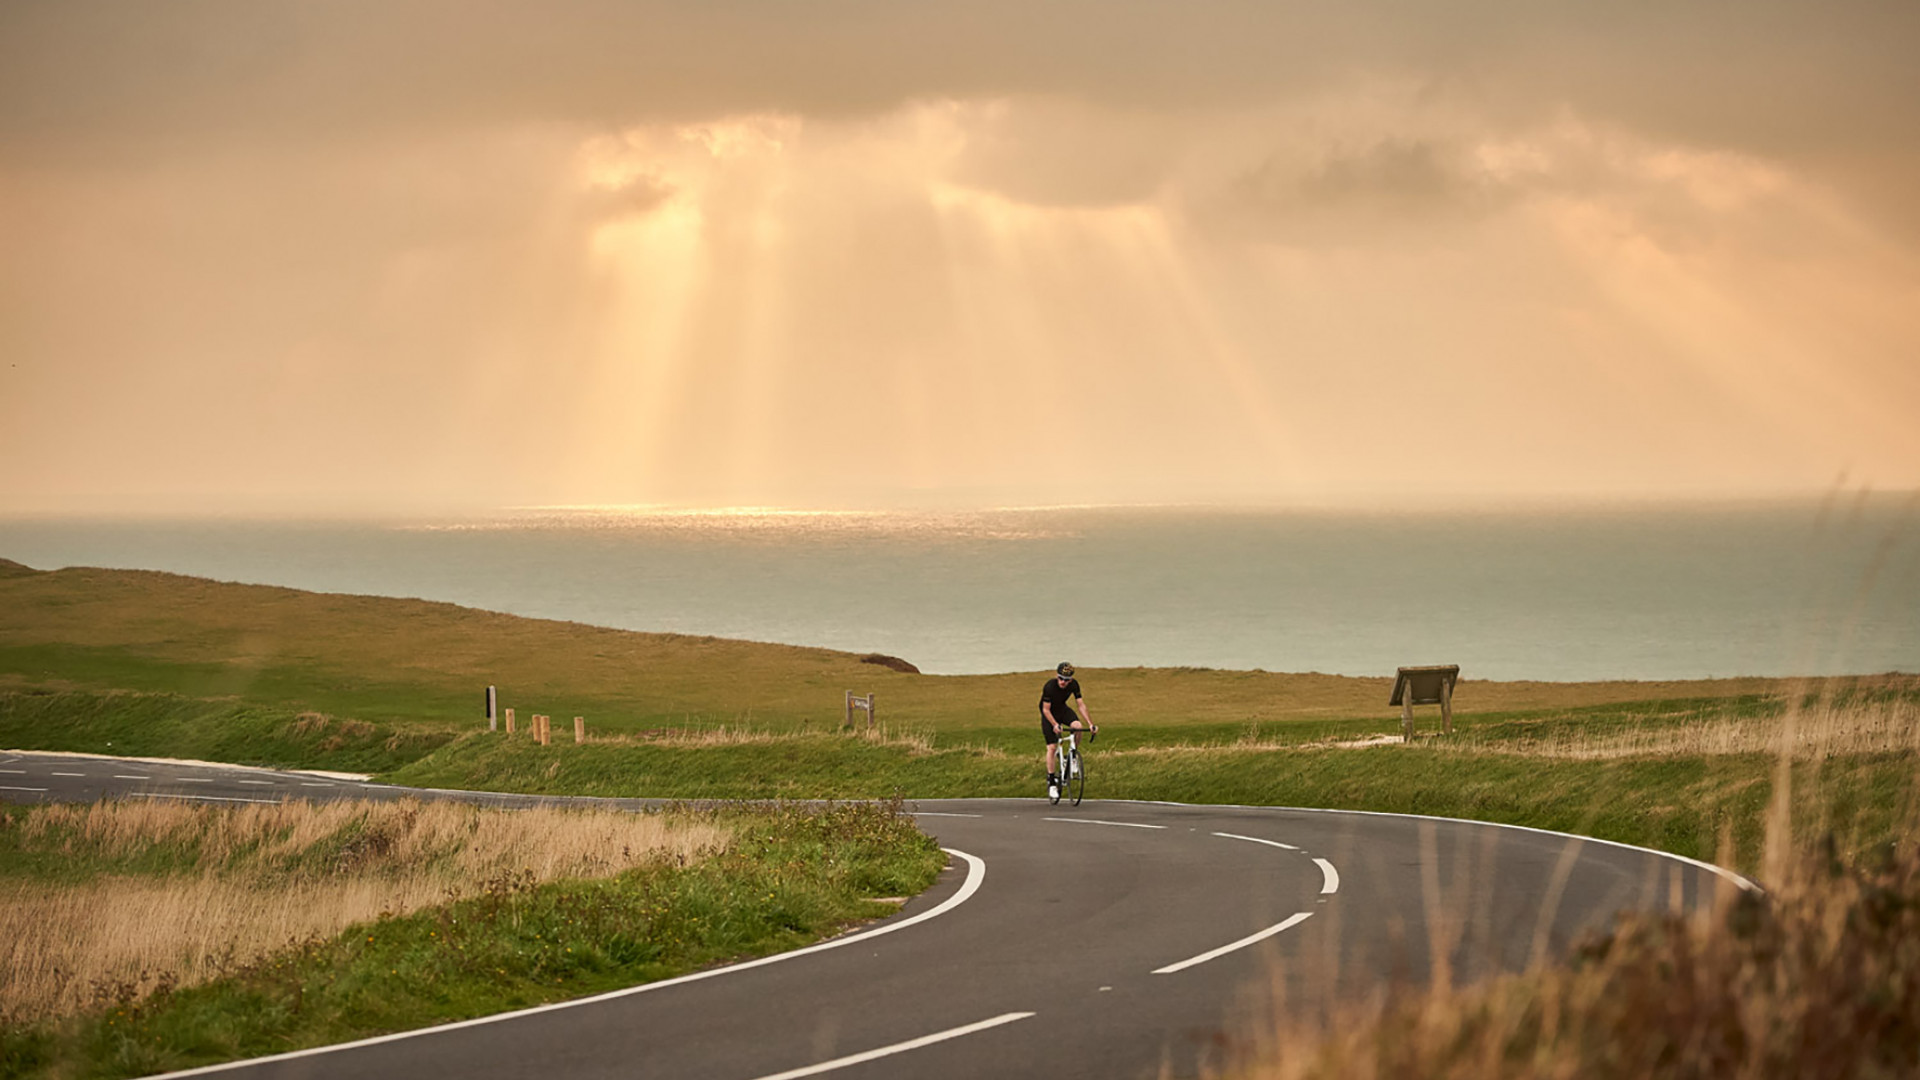 A cyclist riding a Orro Carbon Fibre Road Bike through a seaside coastal road whilst wearing a black Orro Cycling Jersey